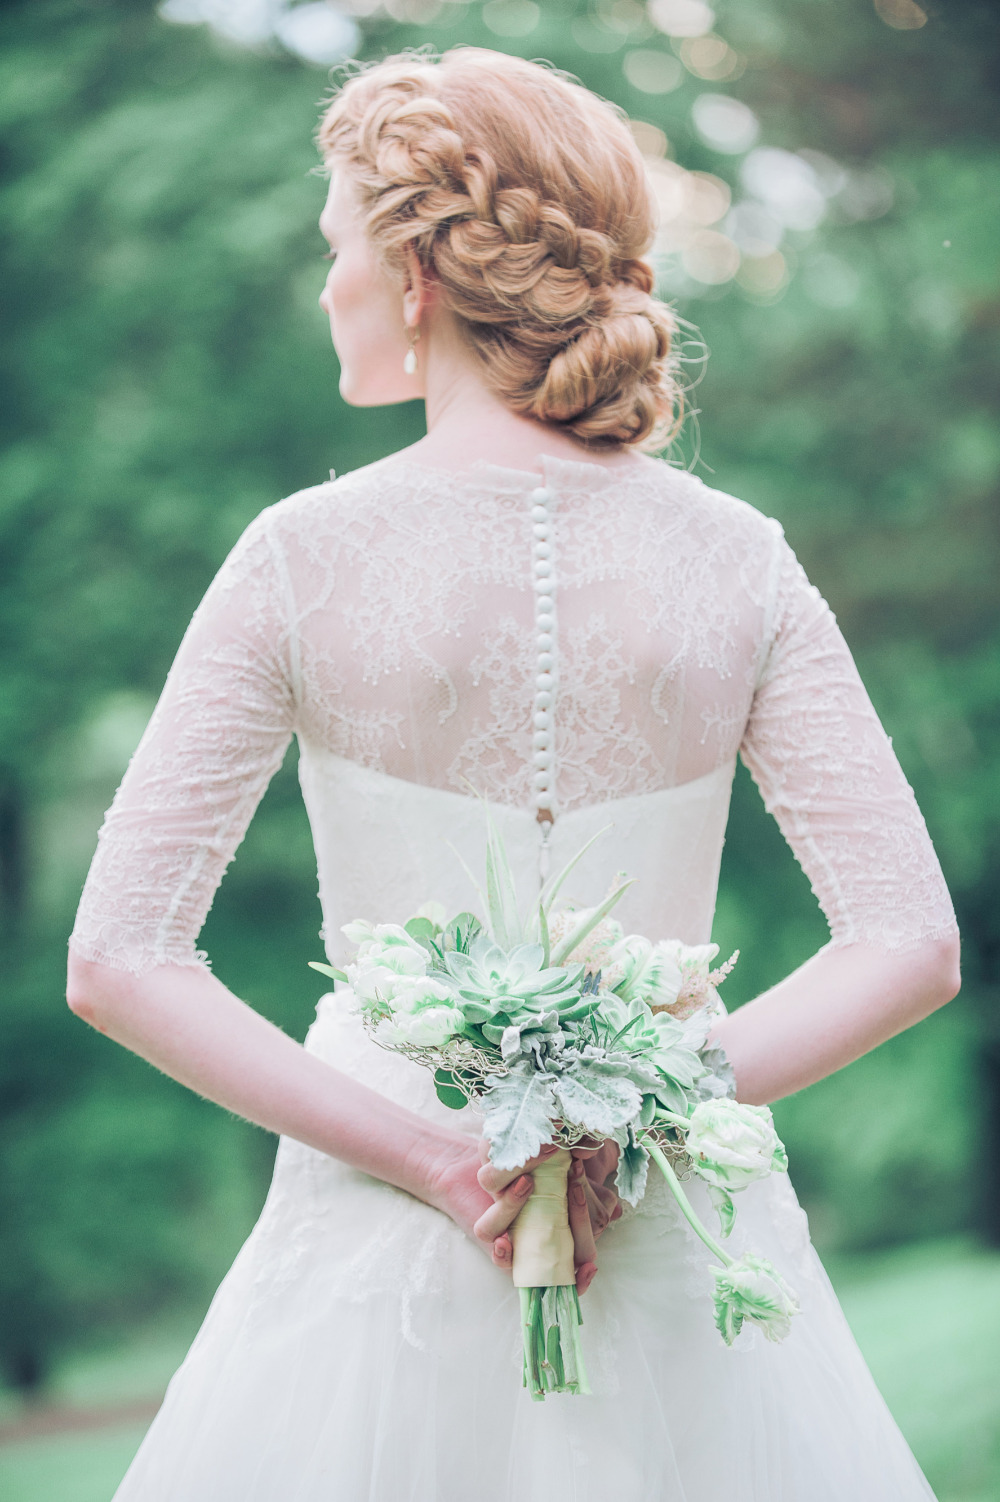 beautiful braided wedding hairstyle and succulent bouquet